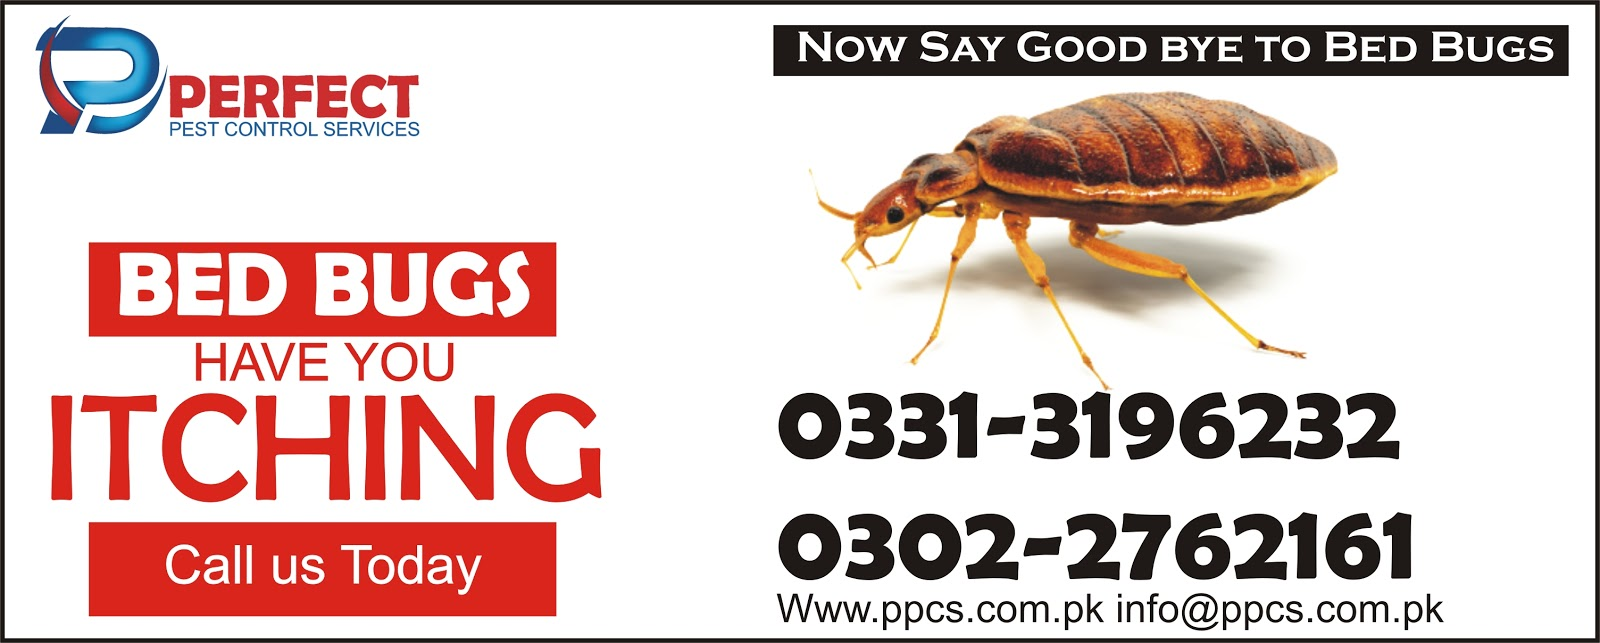 Perfect Pest Control Services Termite Proofing Treatment Bedbugs Treatment Cockroach Treatment